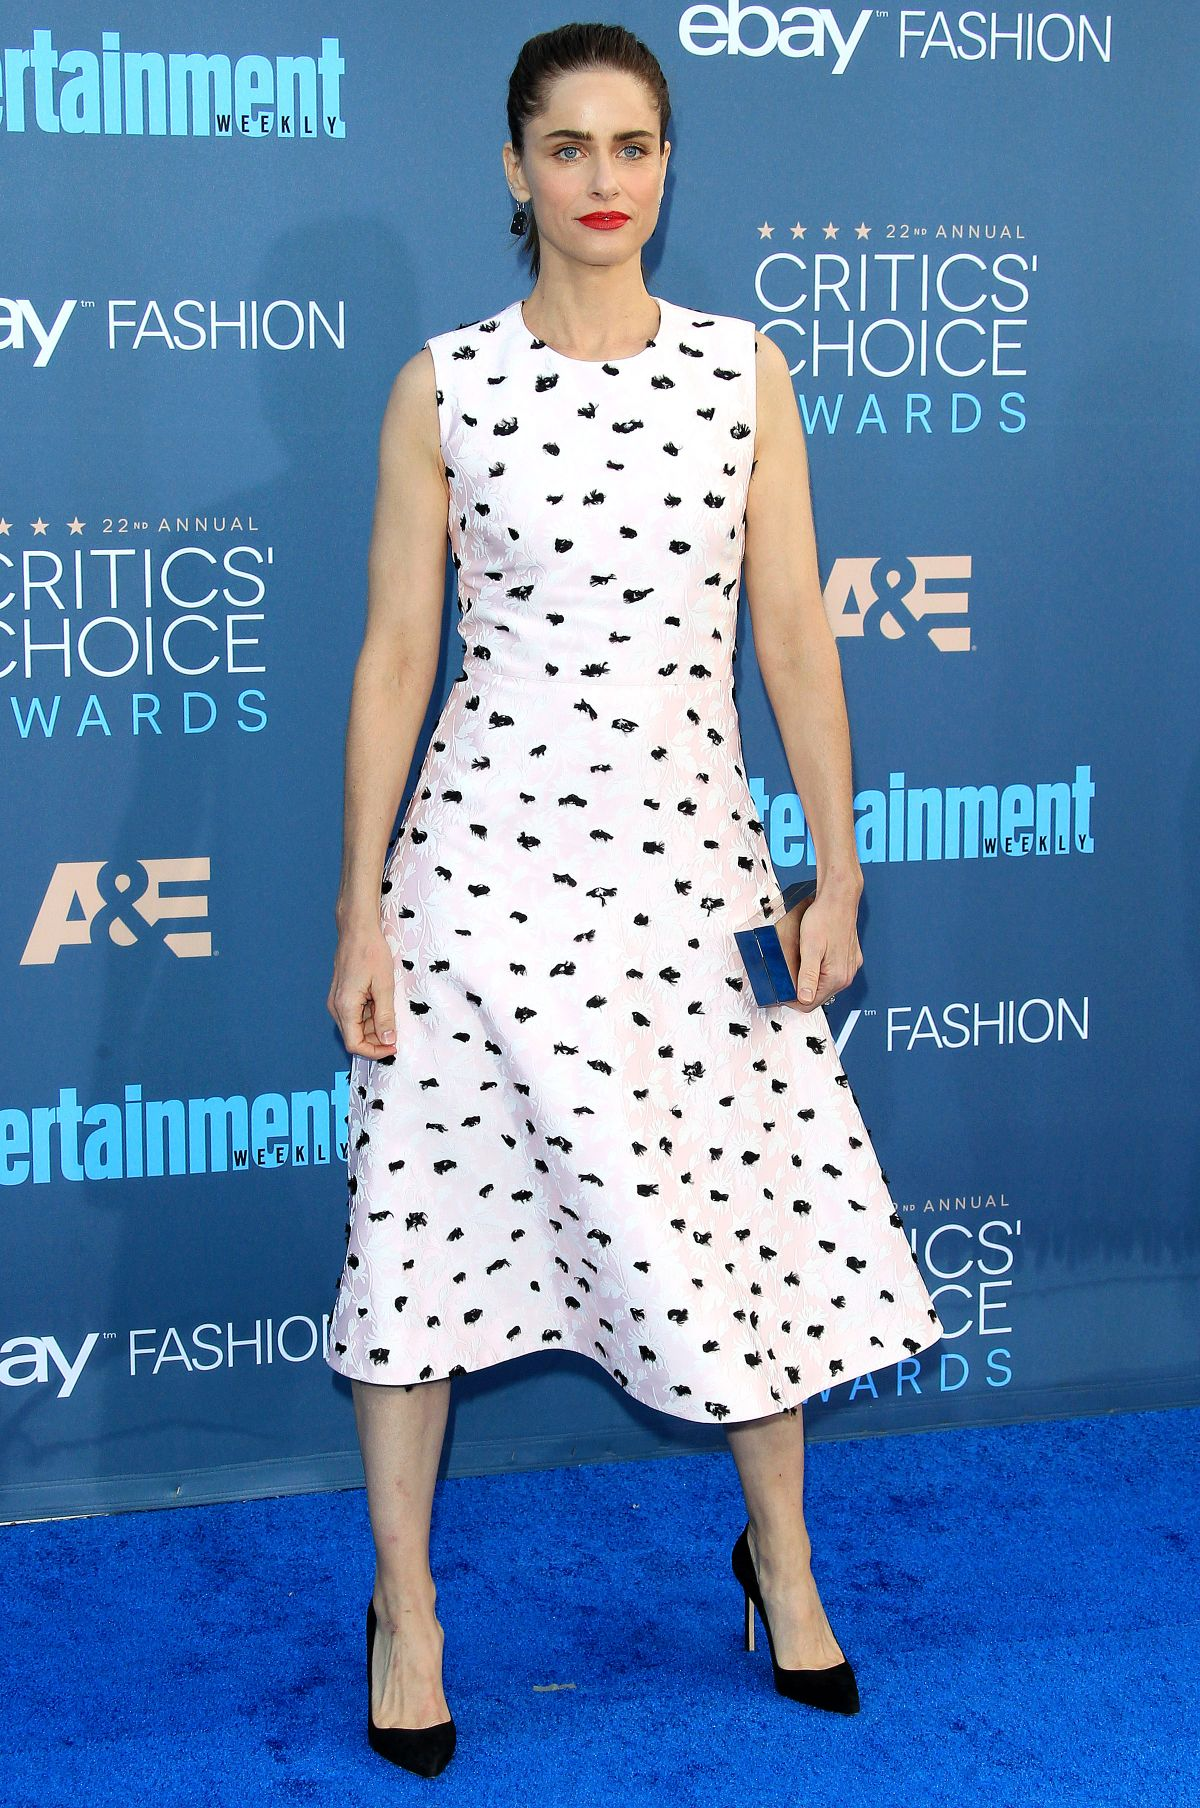 Amanda Peet At The 22nd Annual Critics' Choice Awards in Santa Monica   amanda-peet-at-the-22nd-annual-critics-choice-awards-in-santa-monica-_7